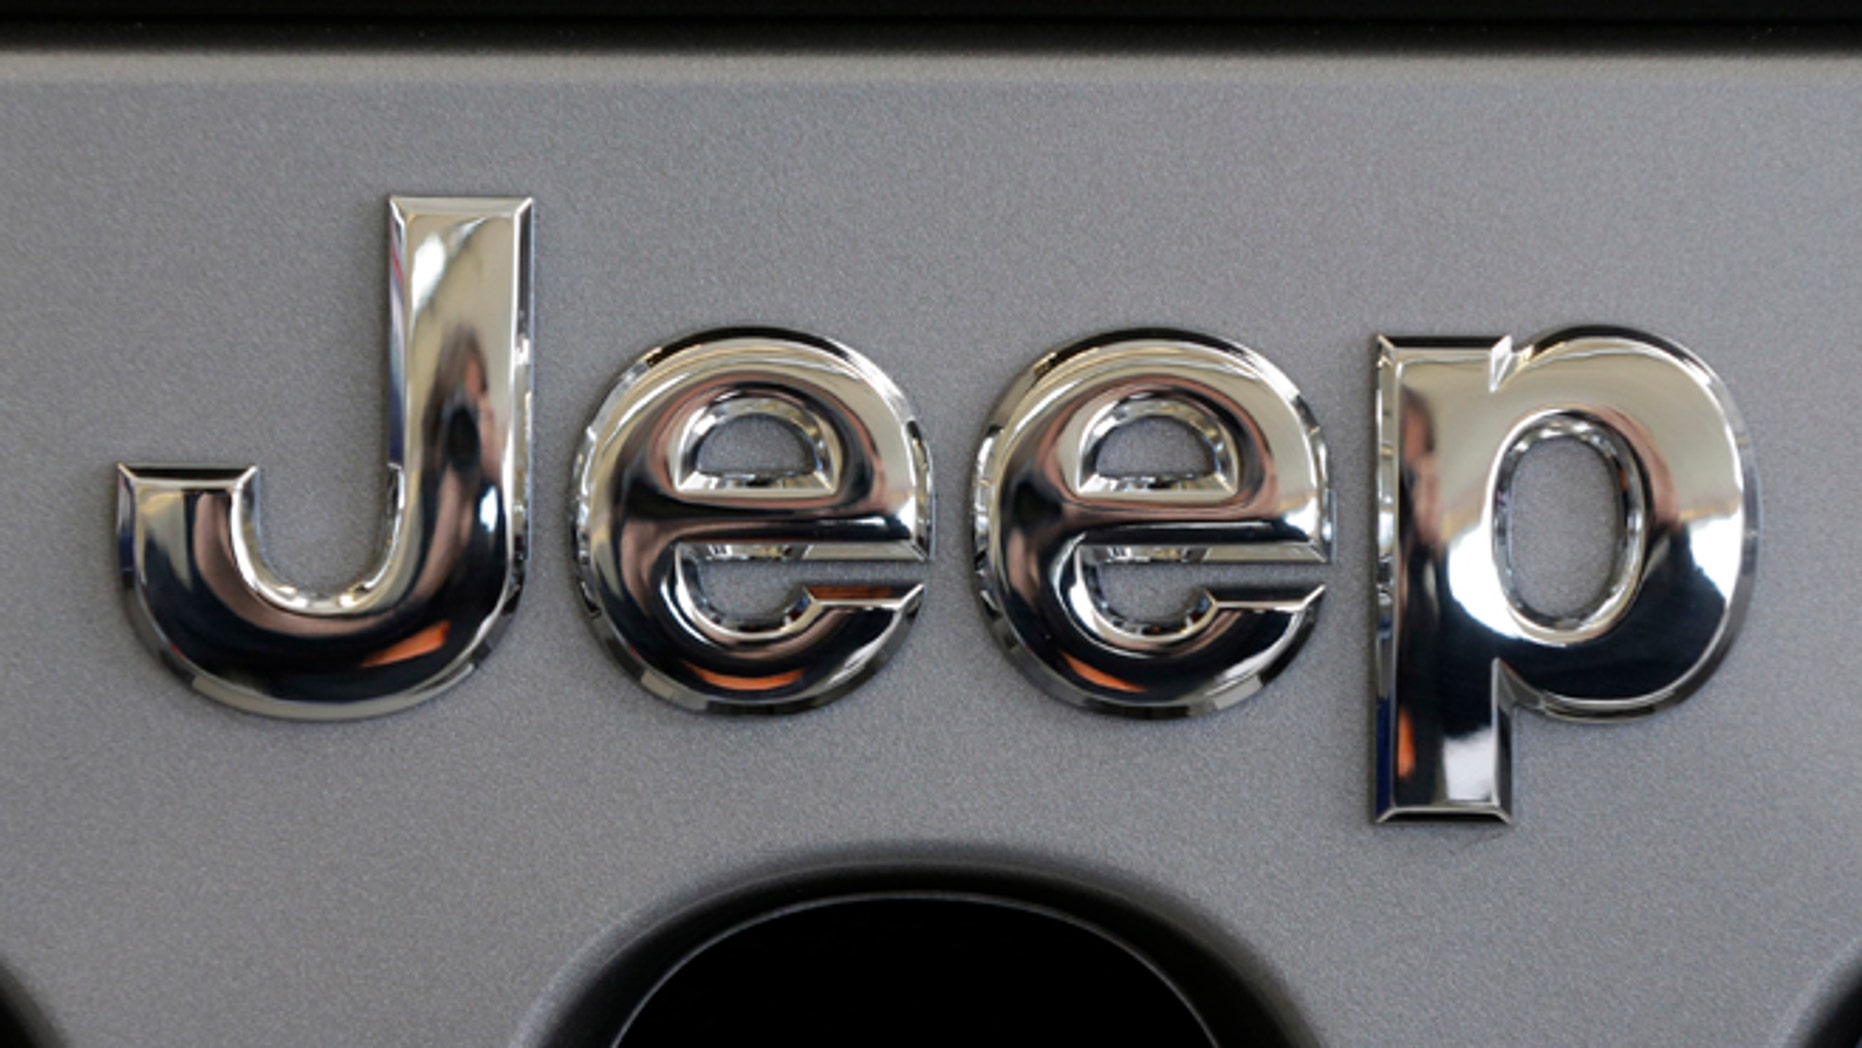 Feb. 14, 2013: A Jeep logo is shown on the grill of a Jeep Wrangler at the 2013 Pittsburgh Auto Show in Pittsburgh.